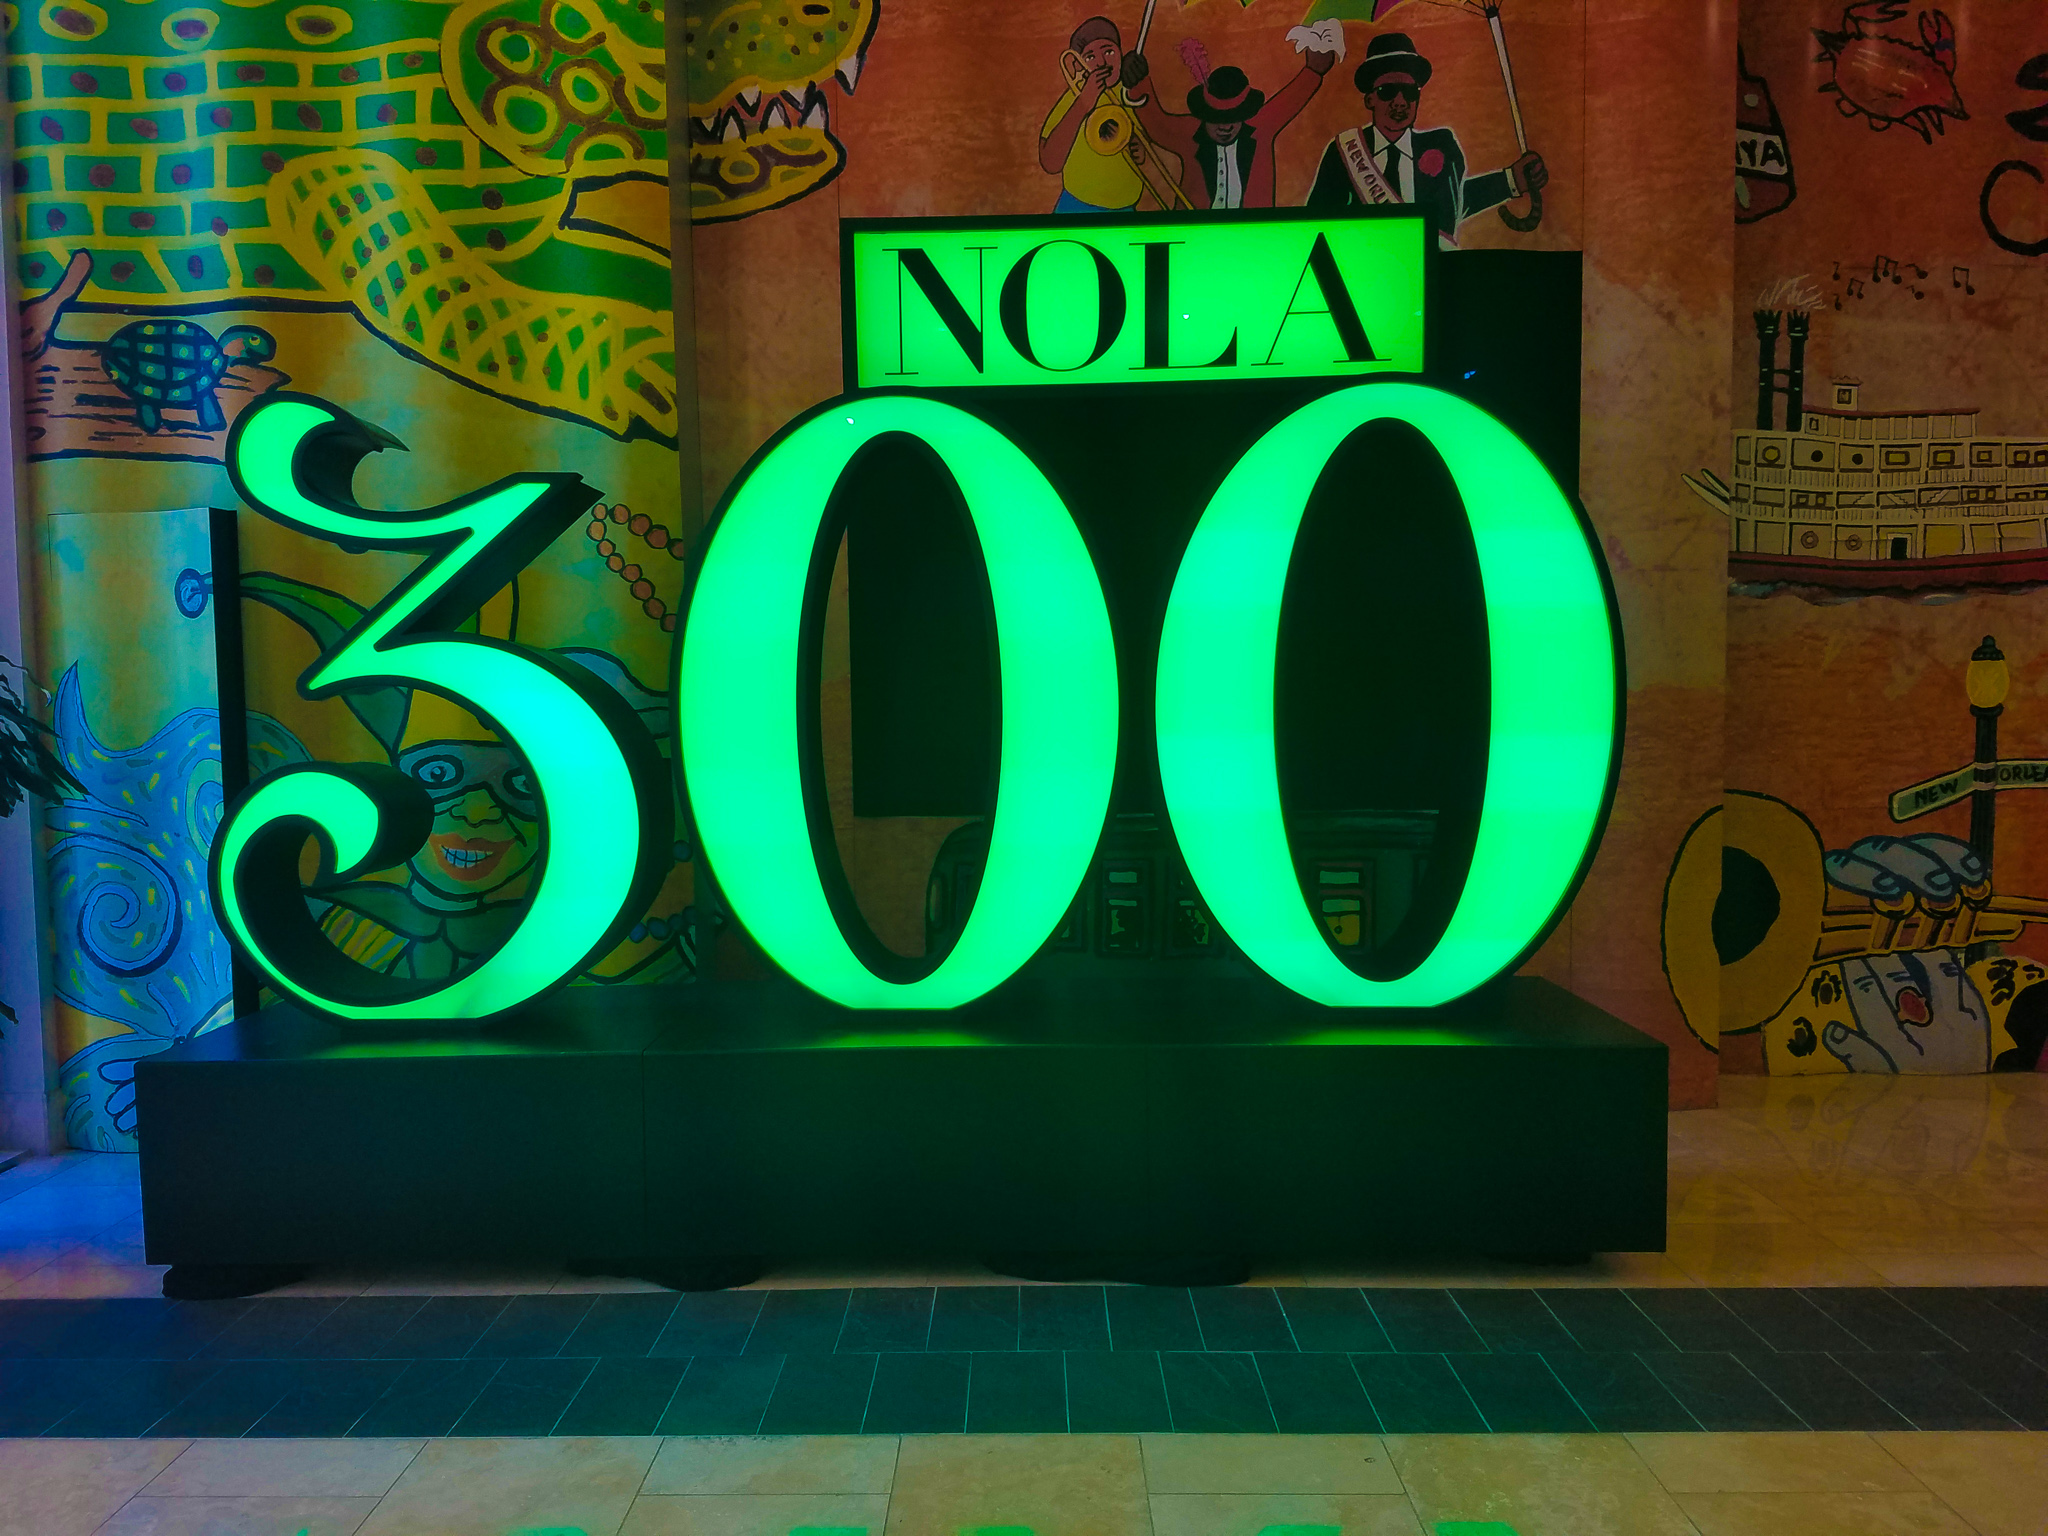 New Orleans Itinerary: 300 years